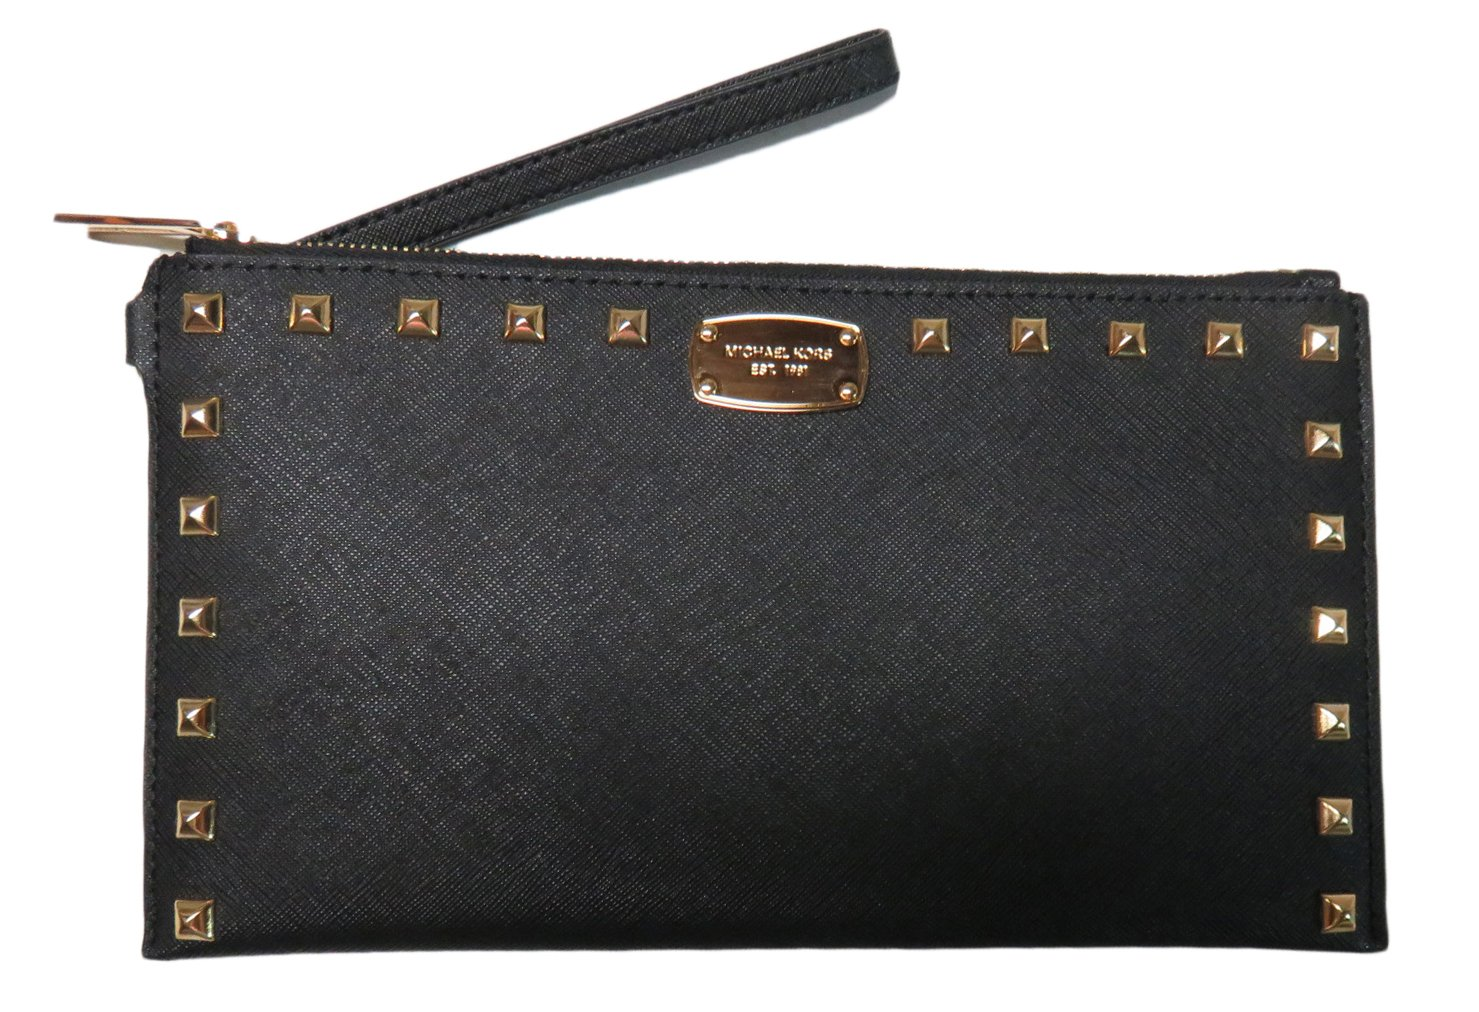 Micheal Kors Sandrine Stud Leather Large Zip Clutch Wristlet Black